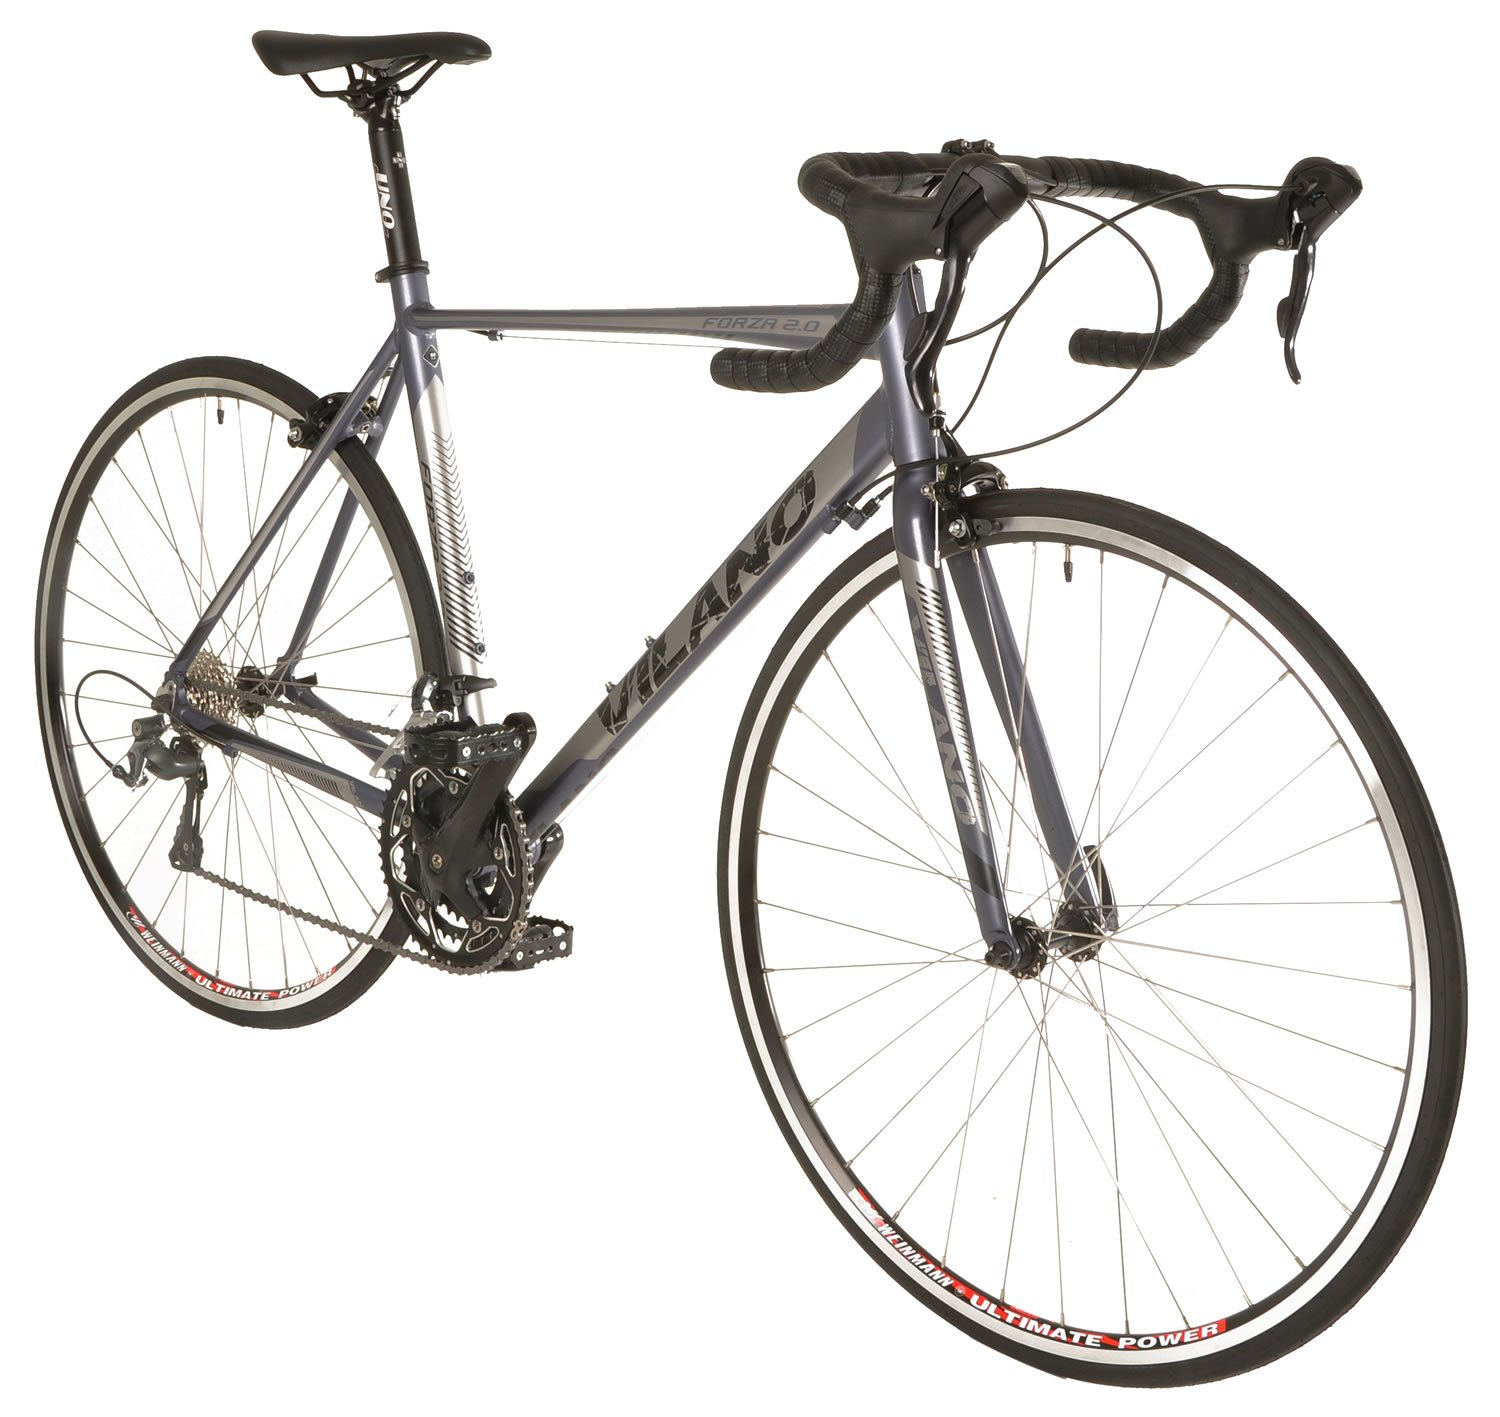 1f294c13f12 Amazon.com : Vilano Forza 2.0 Aluminum Carbon Shimano Tiagra Road Bike :  Sports & Outdoors